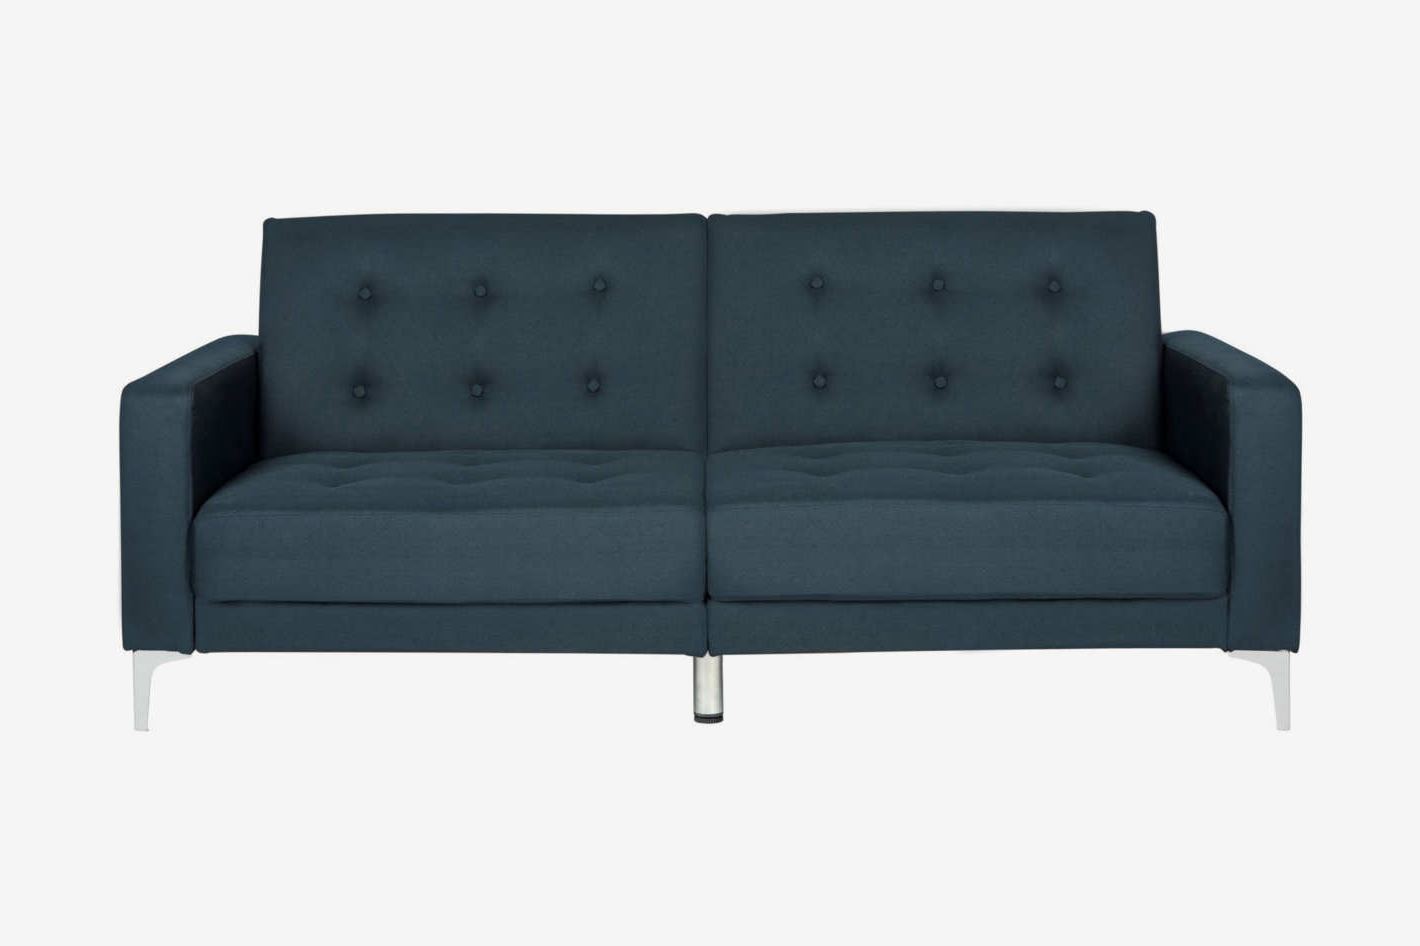 18 Best Sleeper Sofas, Sofa Beds, And Pullout Couches, 2018 Throughout Trendy Convertible Sofa Chair Bed (View 1 of 20)